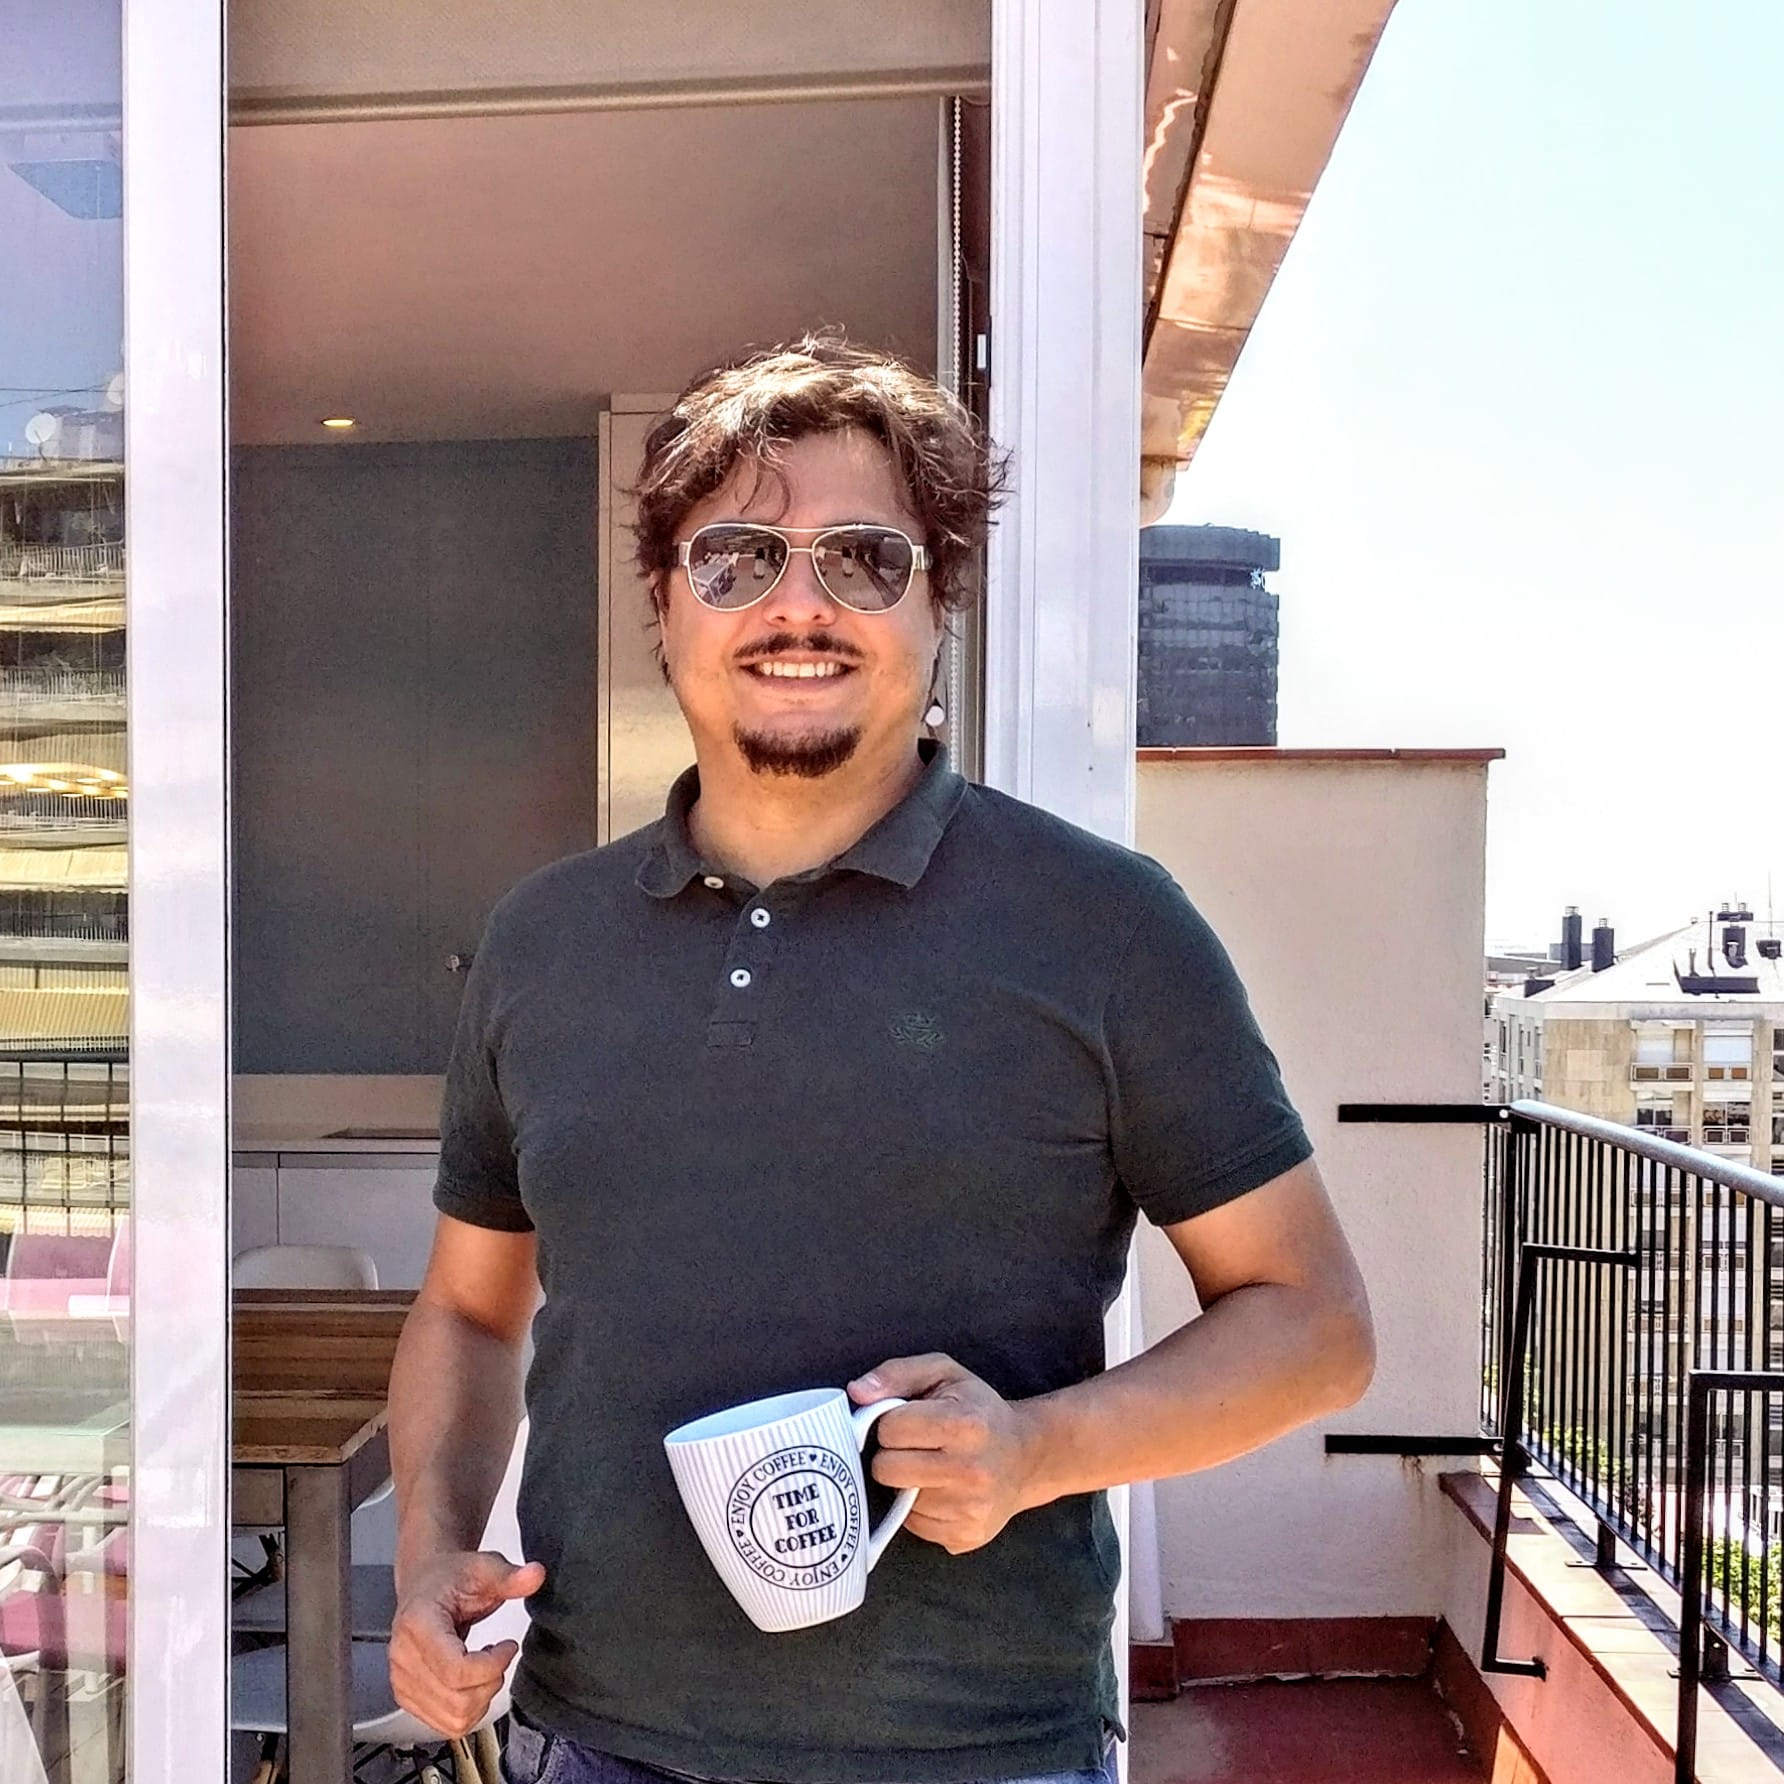 The picture of Jaume taken on the terrace of the Ferran Batik apartment in 2019. Stay in an apartment when you next travel to Barcelona.